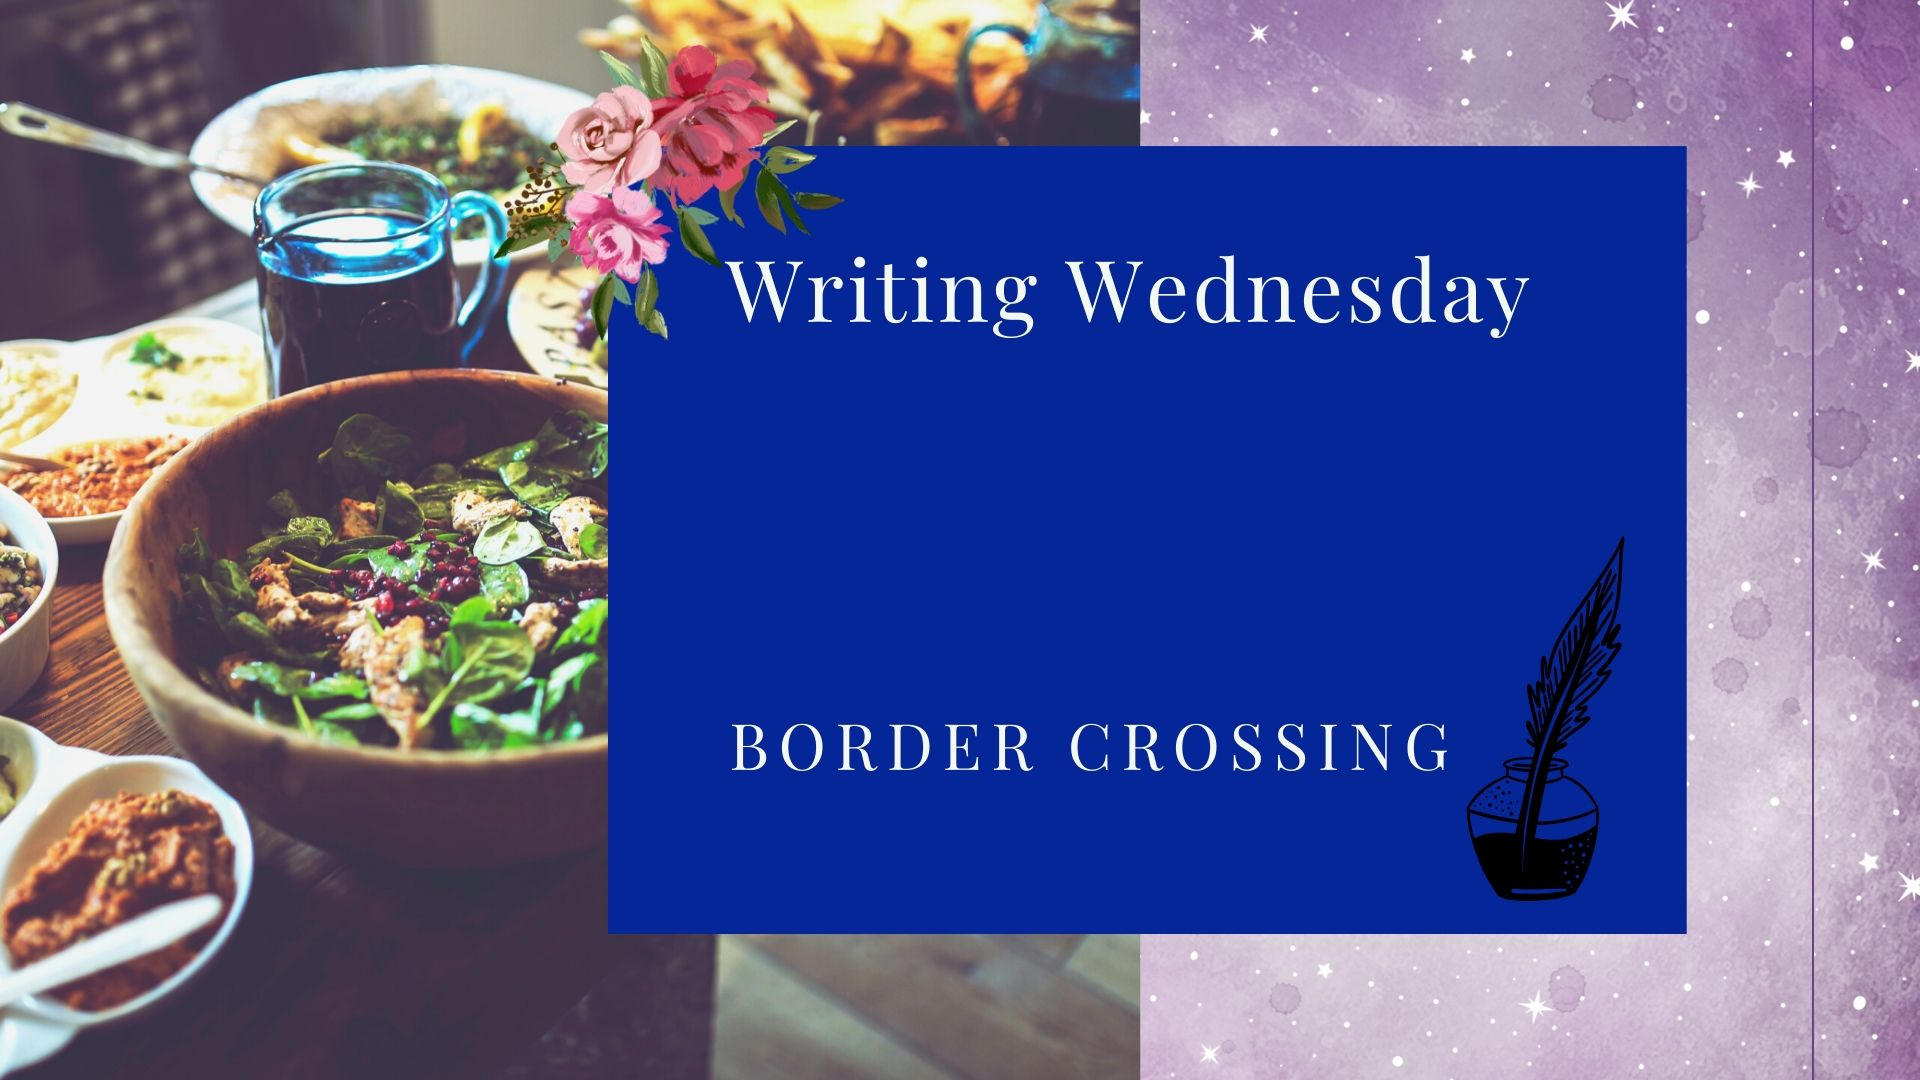 Writing Wednesday: Border Crossing